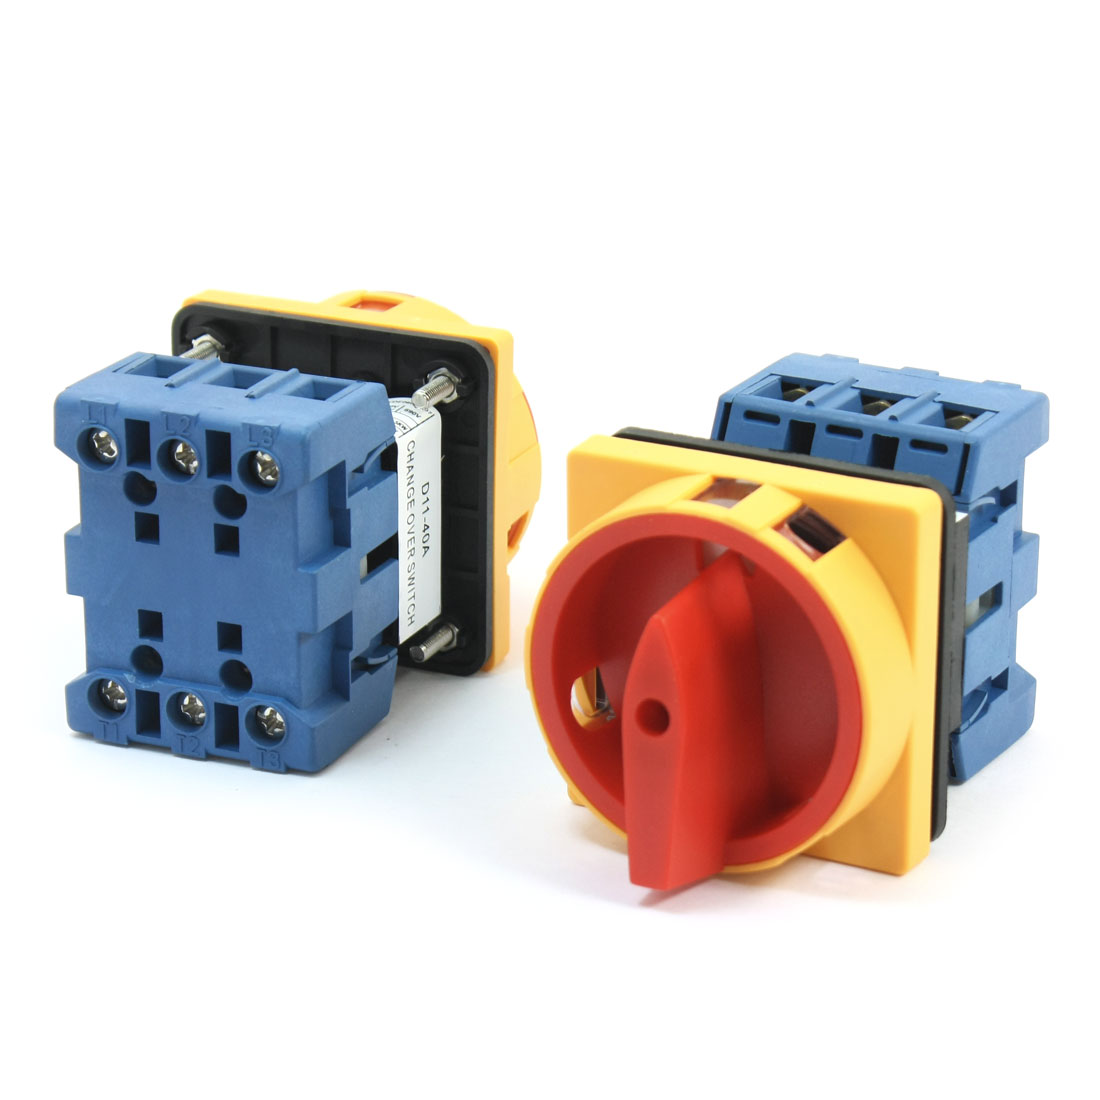 2 Pcs 660V 40A 6 Screw Terminal 2 Positions 3-Pole Square Panel Mounting Universal Rotary Cam Changeover Switch